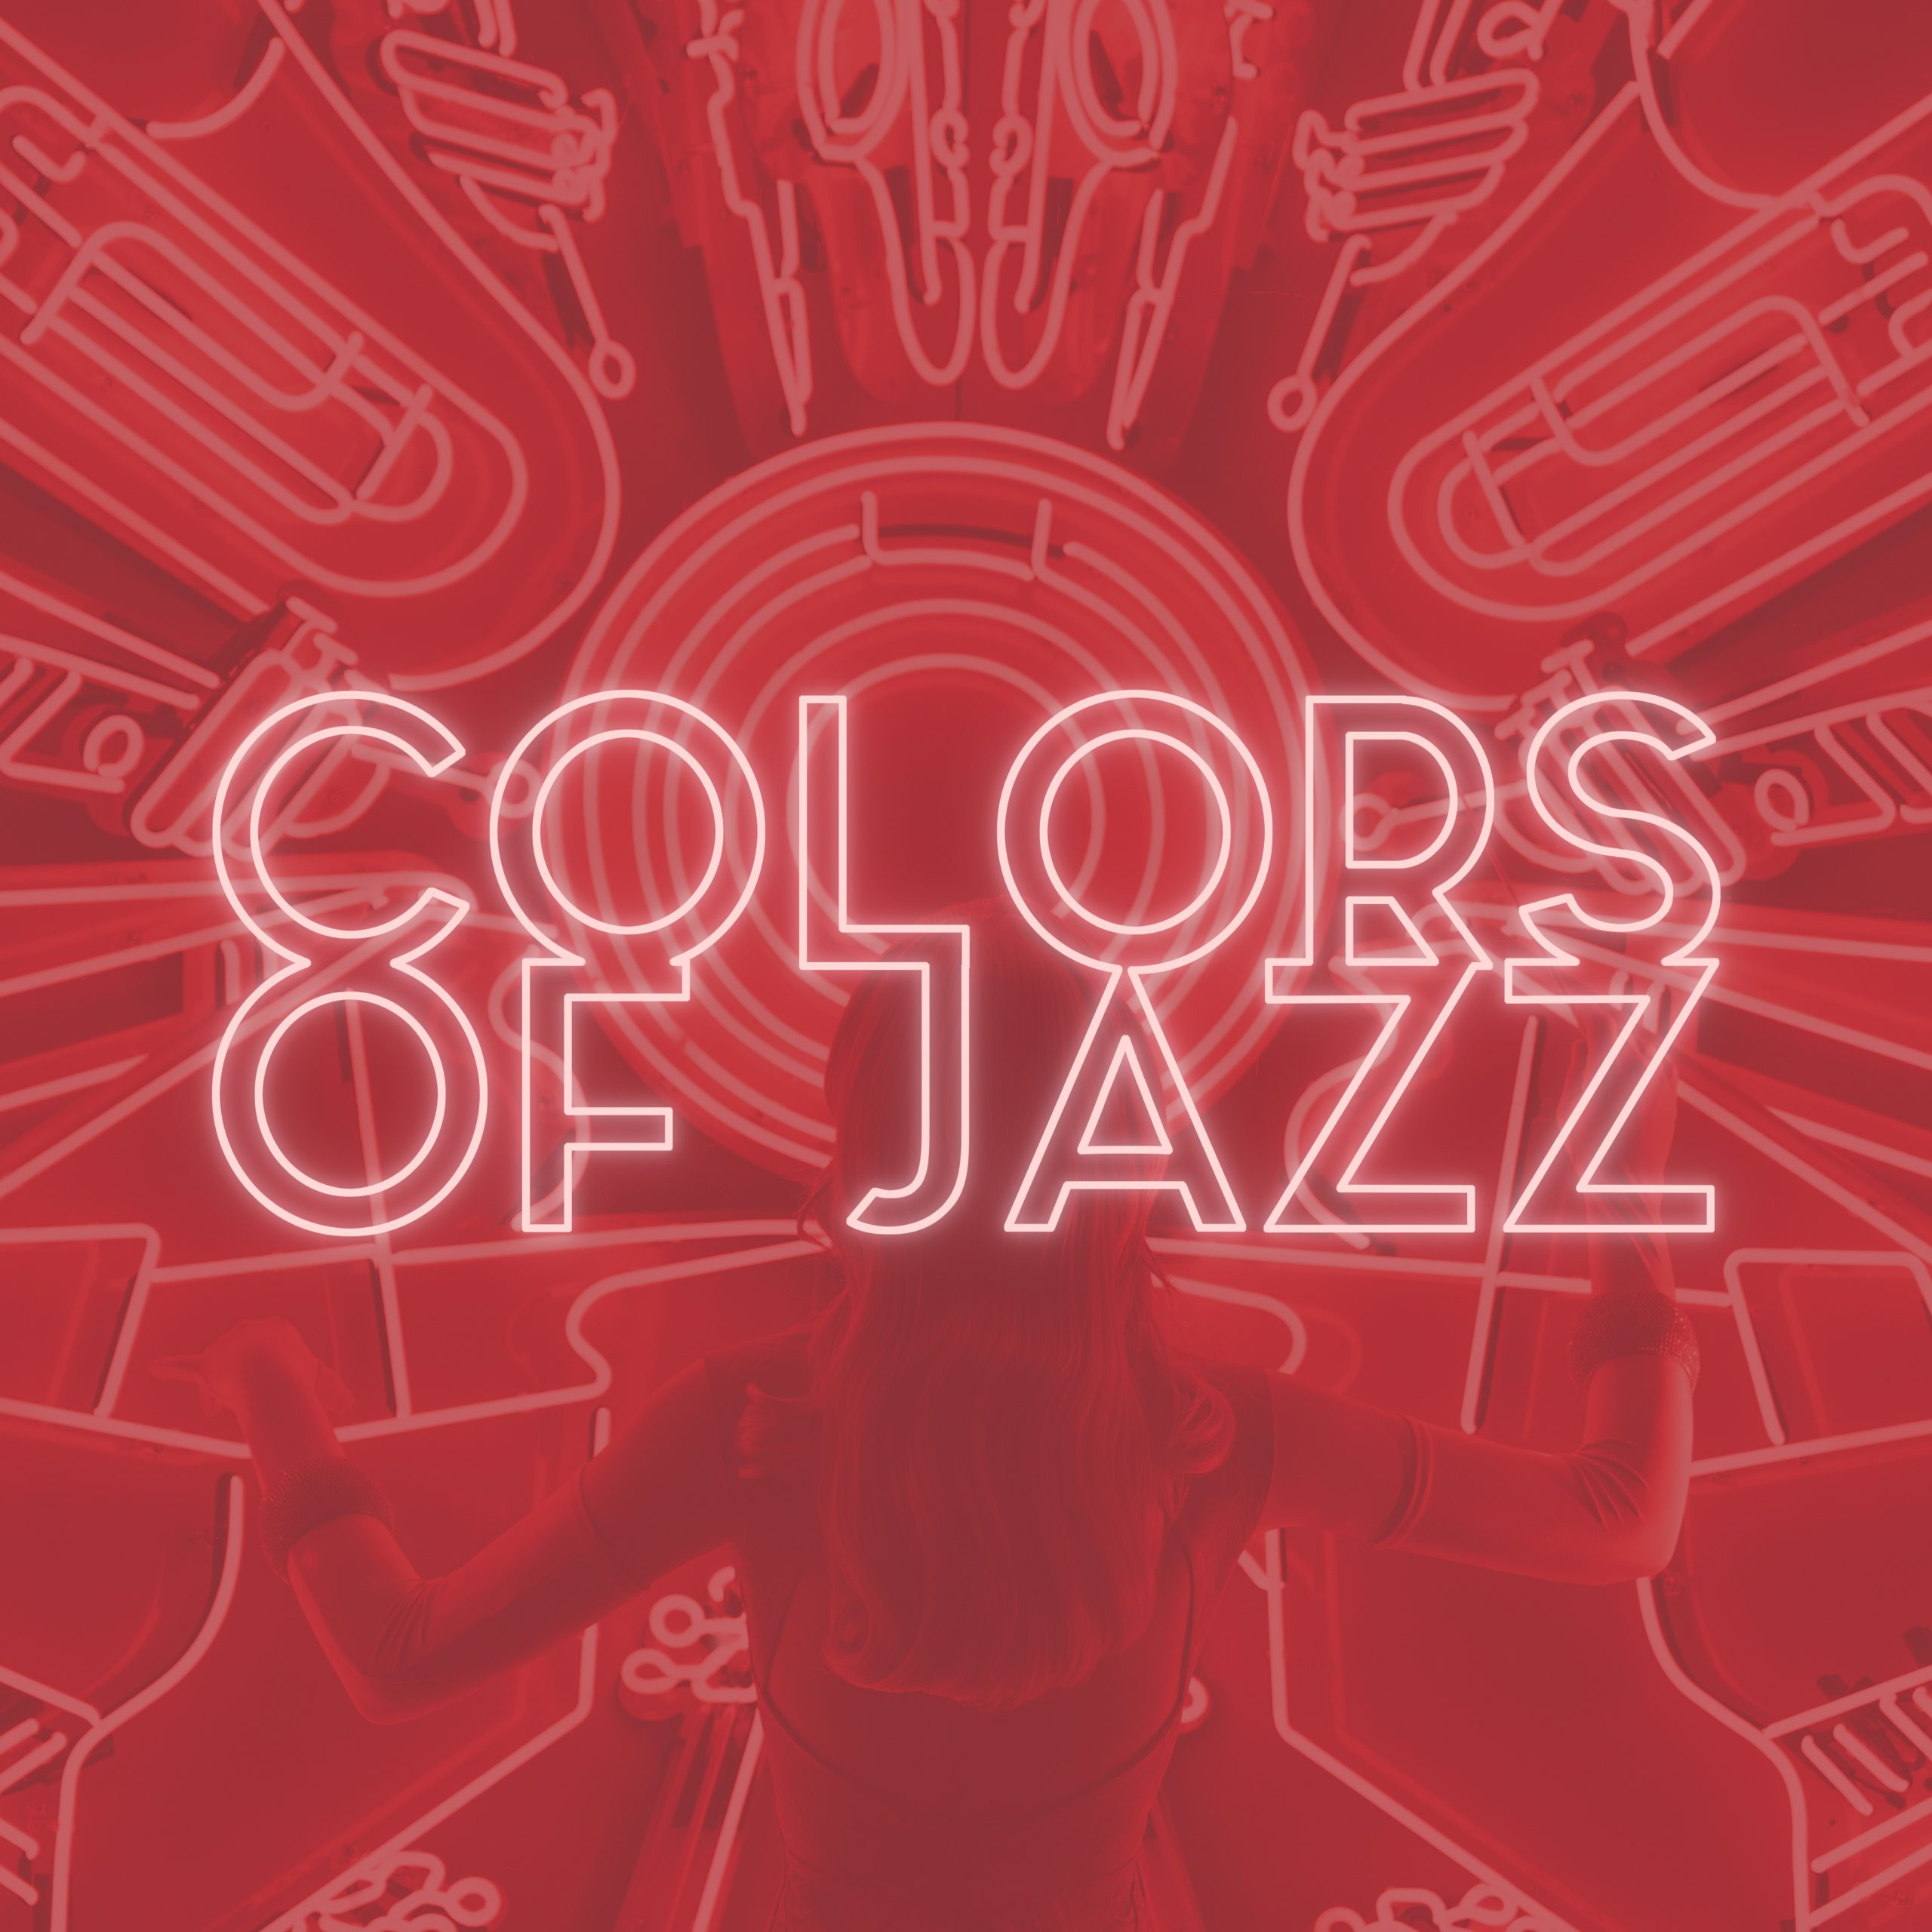 color-of-jazz-shirts-red